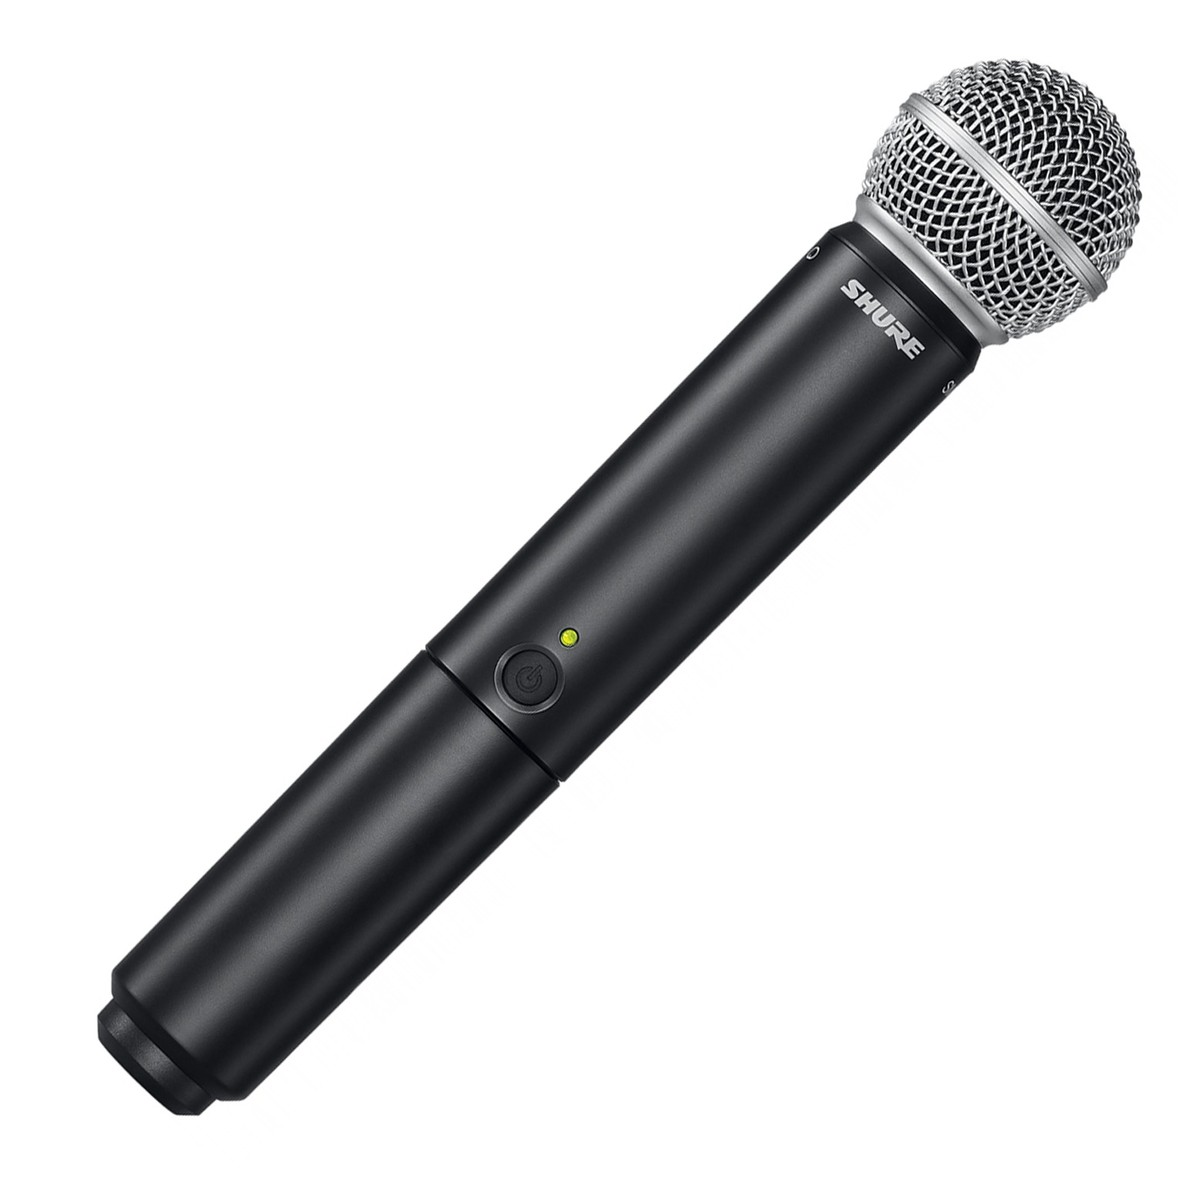 shure blx2 sm58 k3e wireless handheld microphone transmitter at gear4music. Black Bedroom Furniture Sets. Home Design Ideas